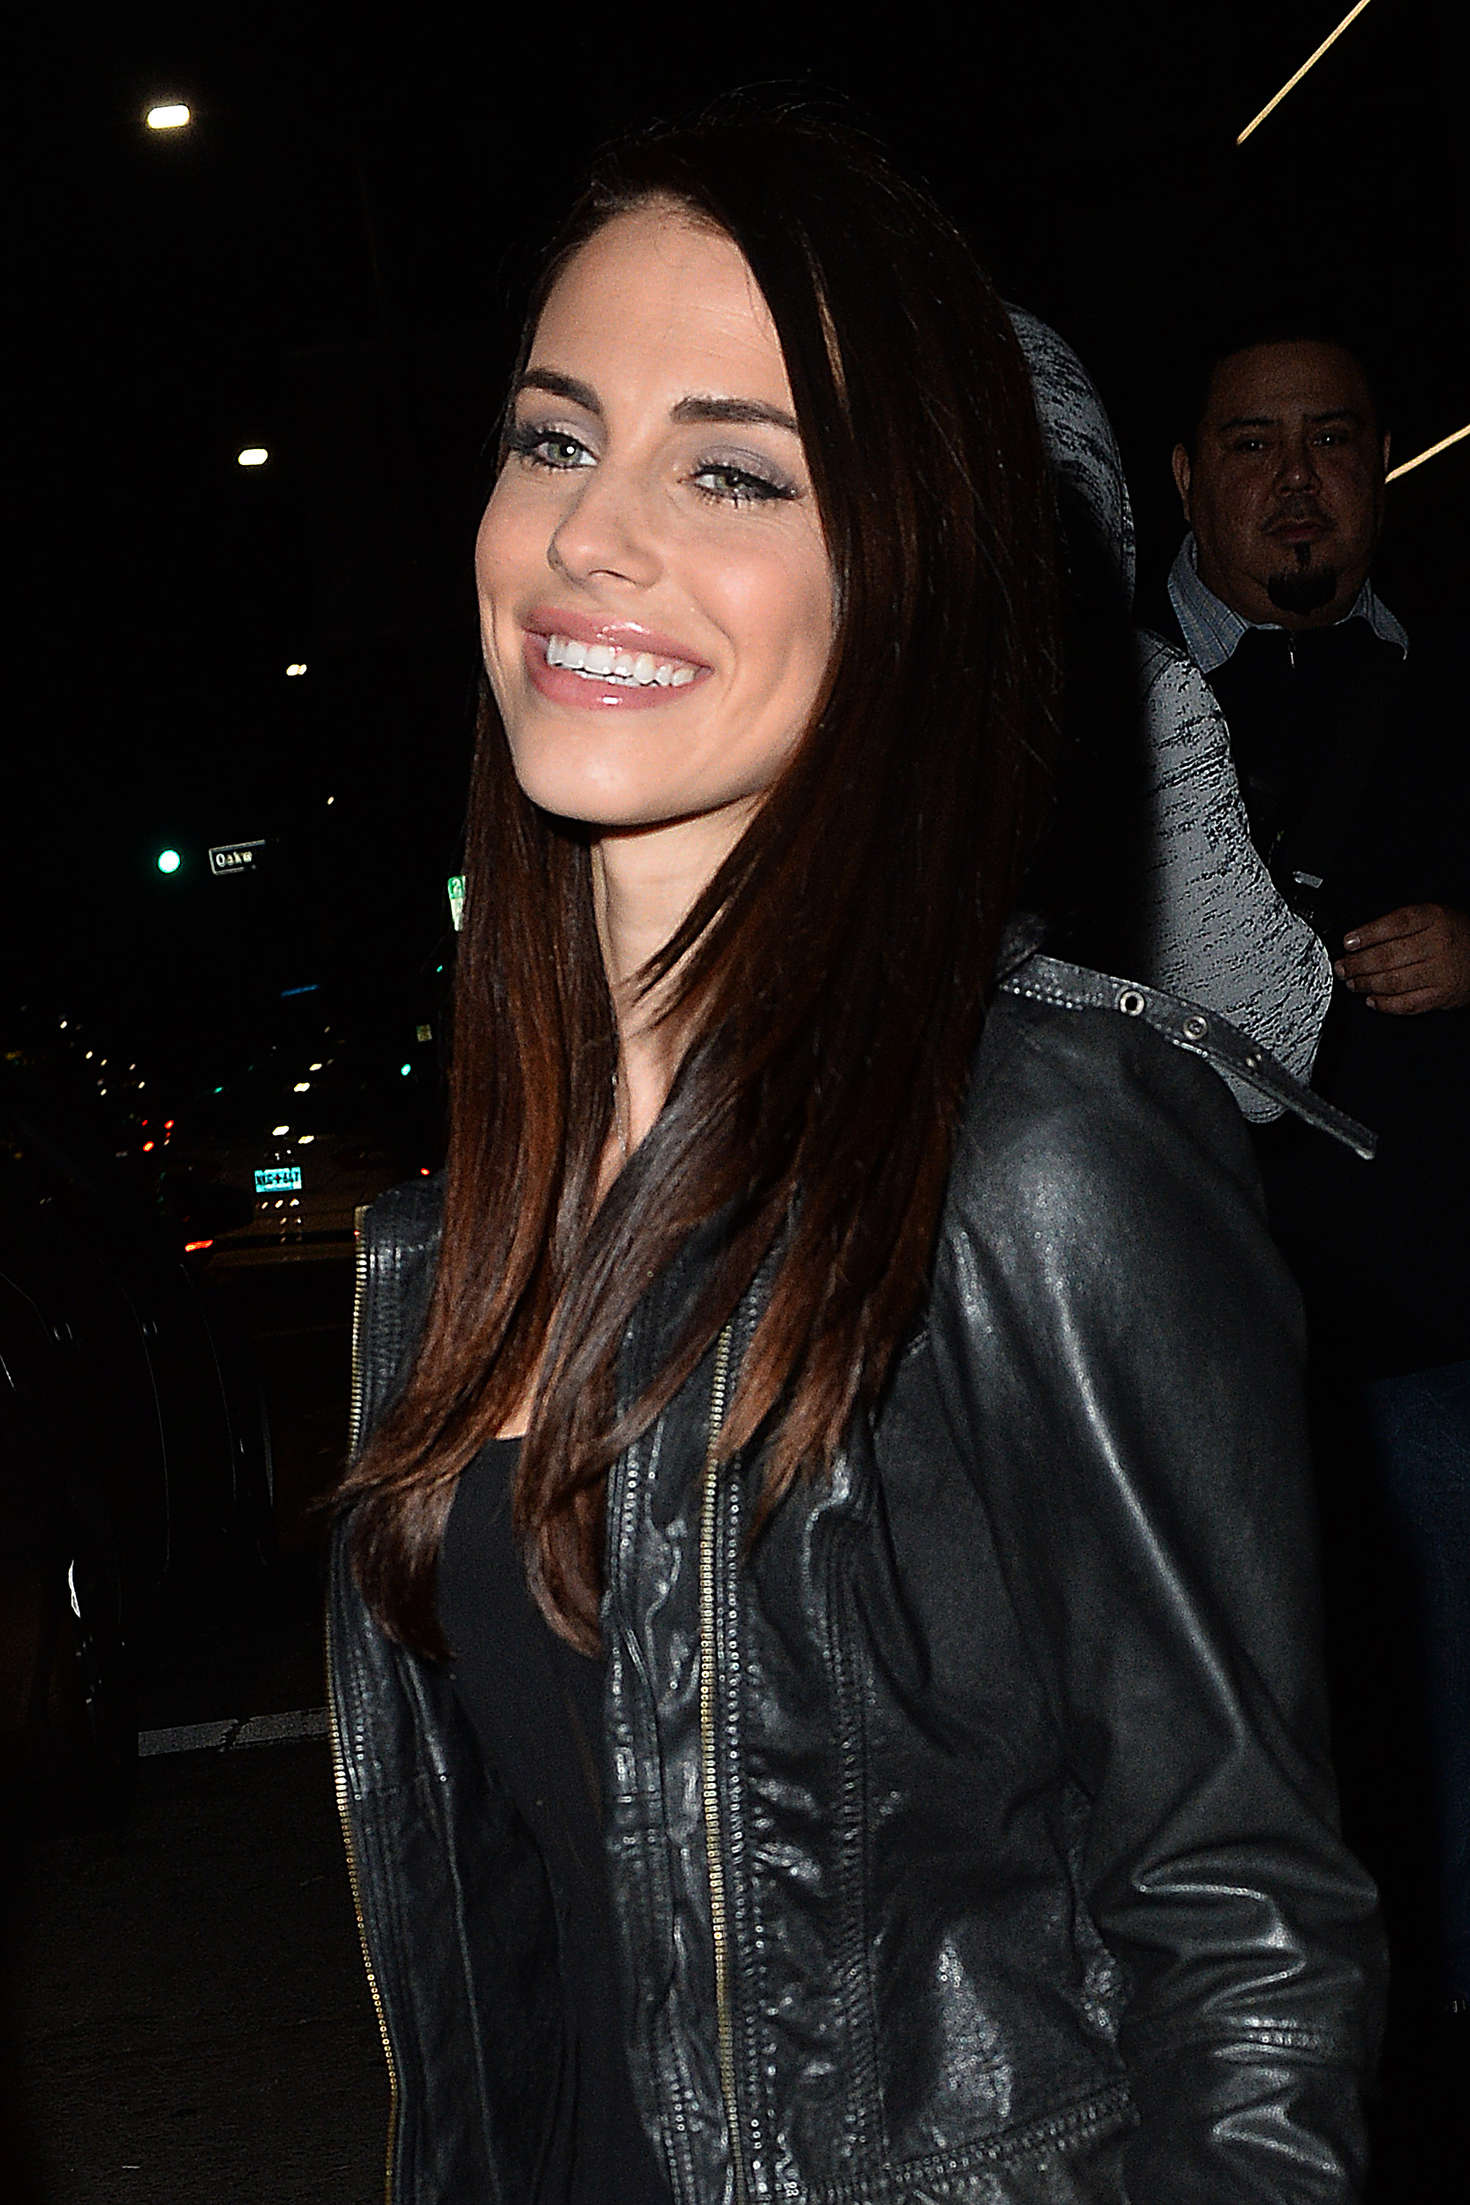 Jessica Lowndes at Nice Guy in Los Angeles